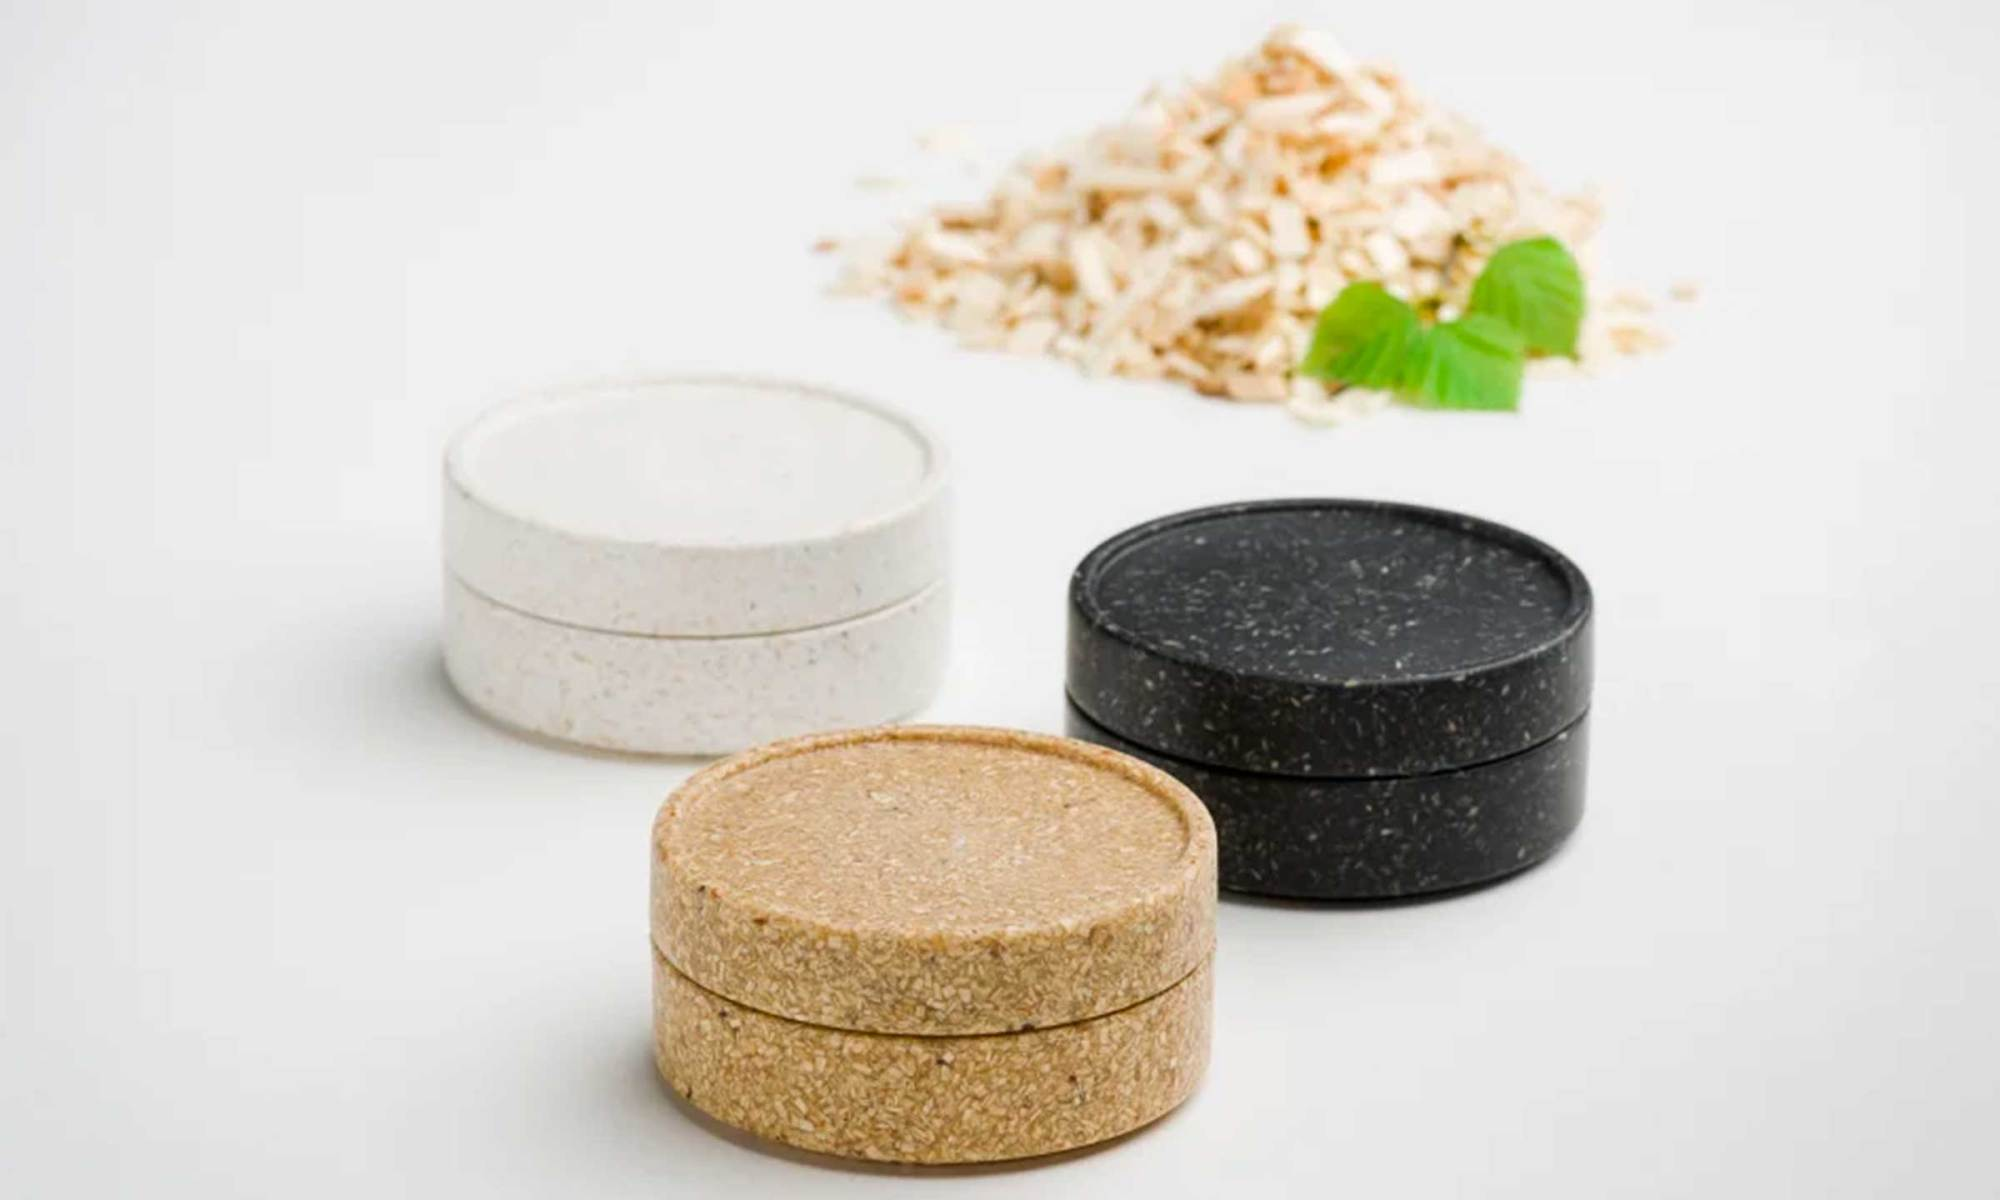 Packaging Innovations - 100% Biodegradable Cosmetic Packaging